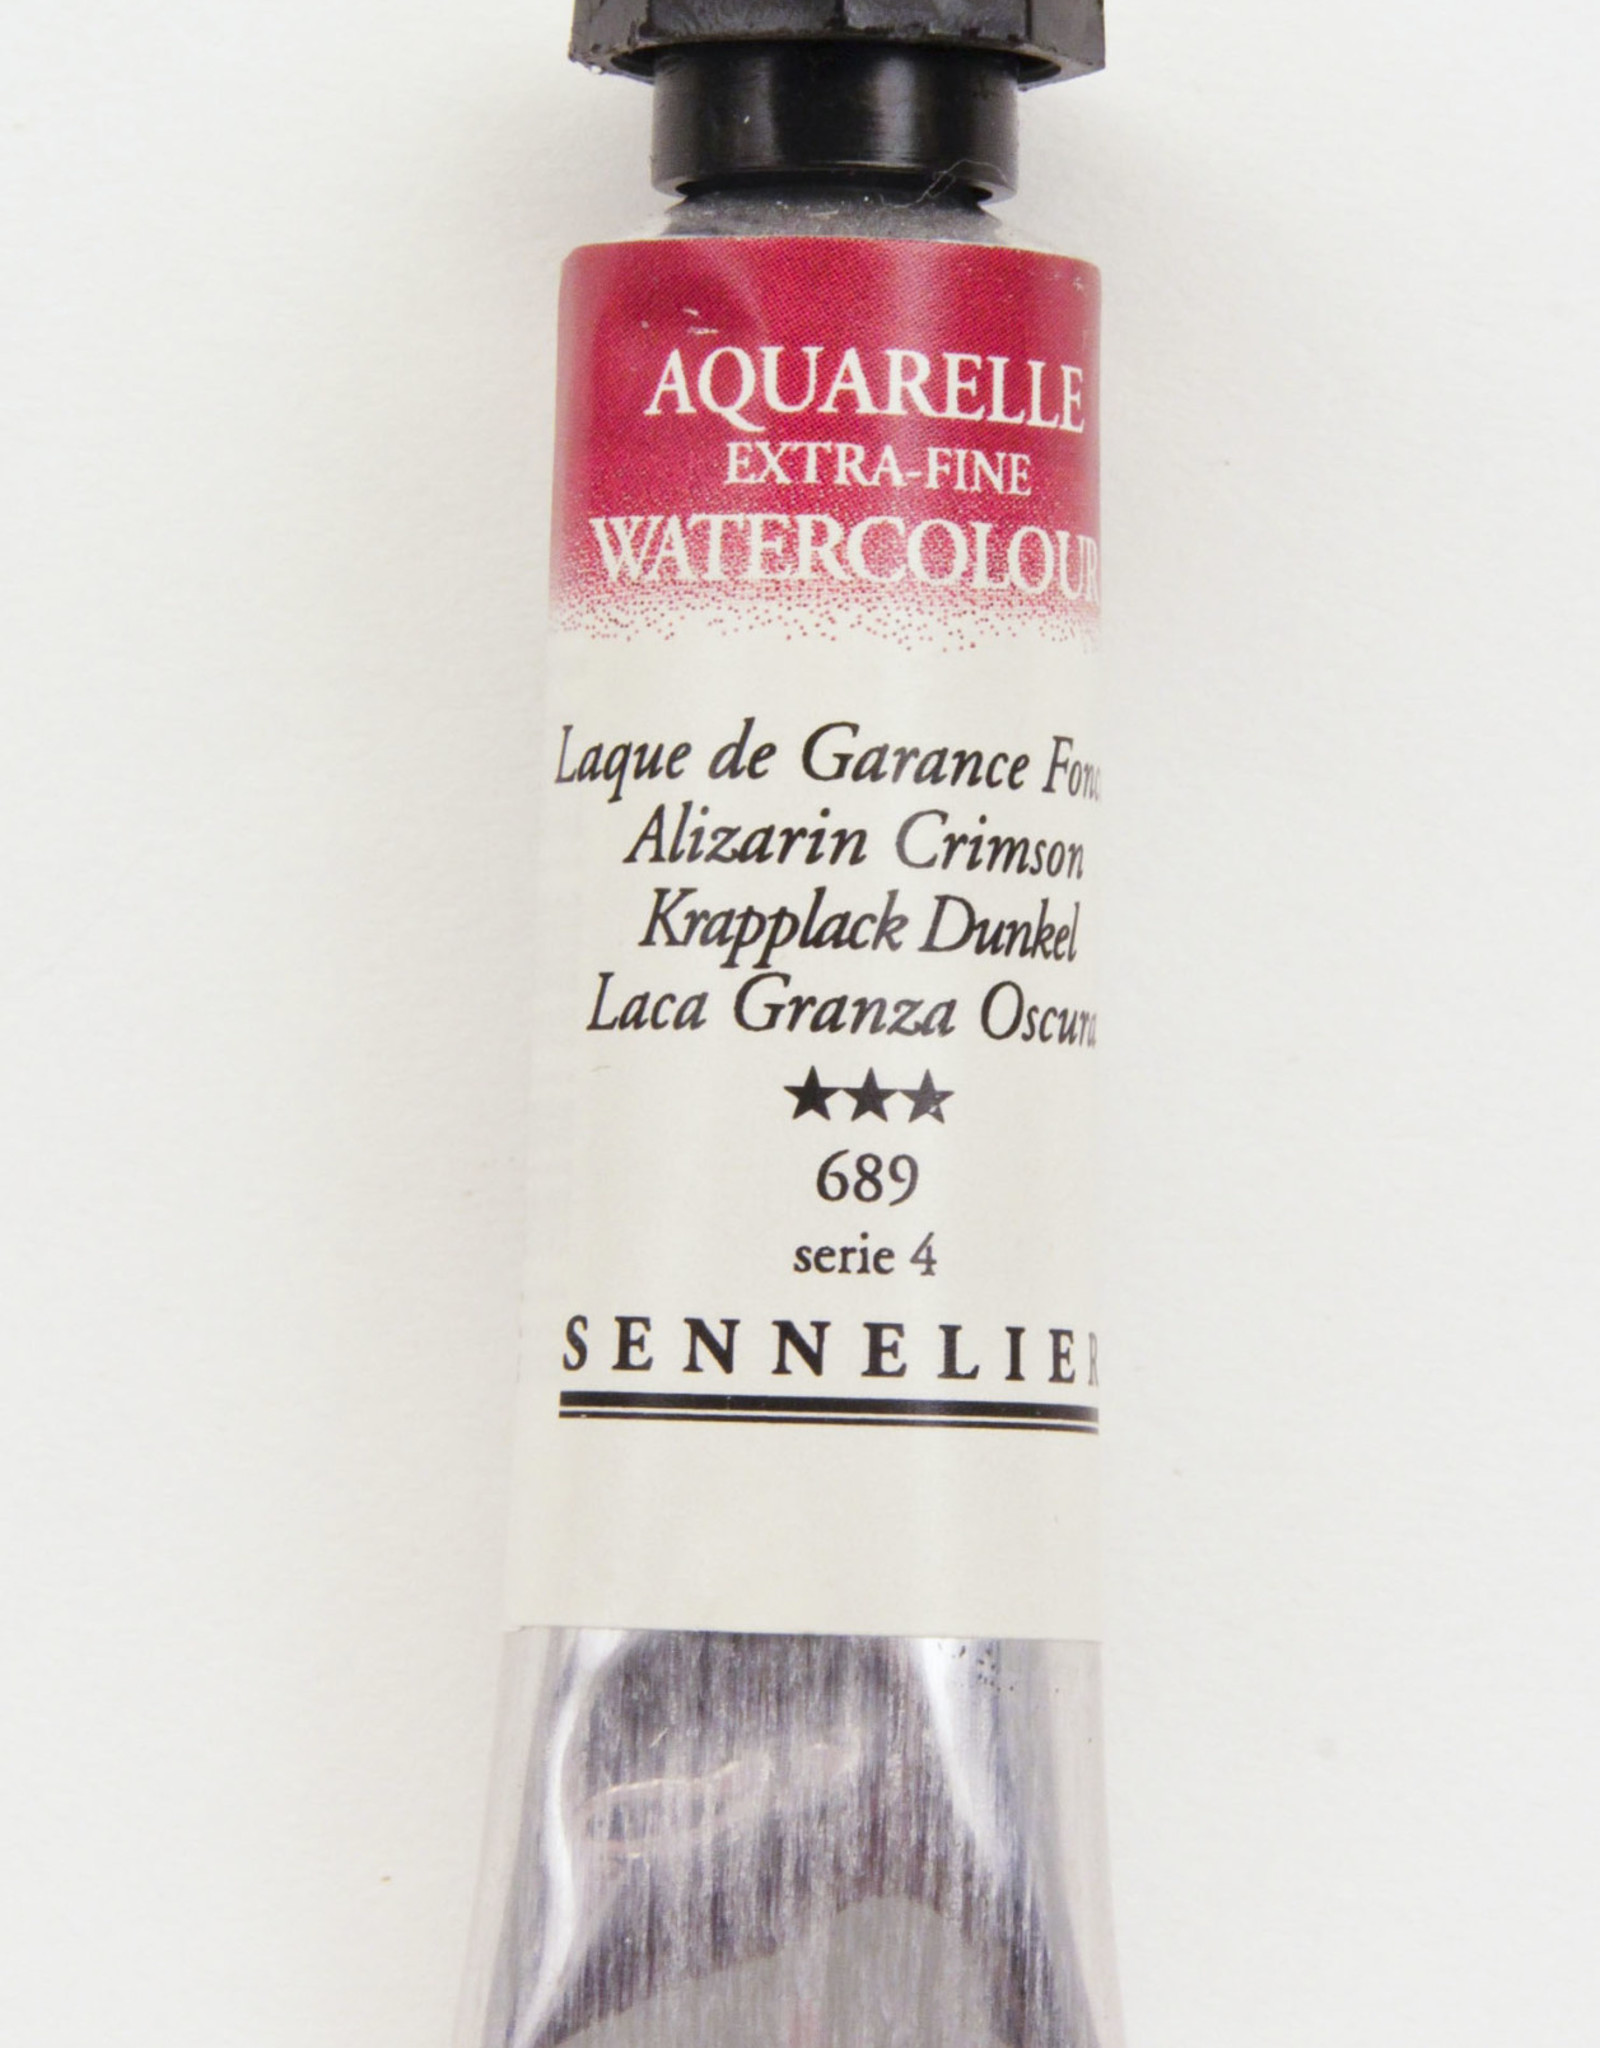 Sennelier, Aquarelle Watercolor Paint, Alizarin Crimson, 689,10ml Tube, Series 3